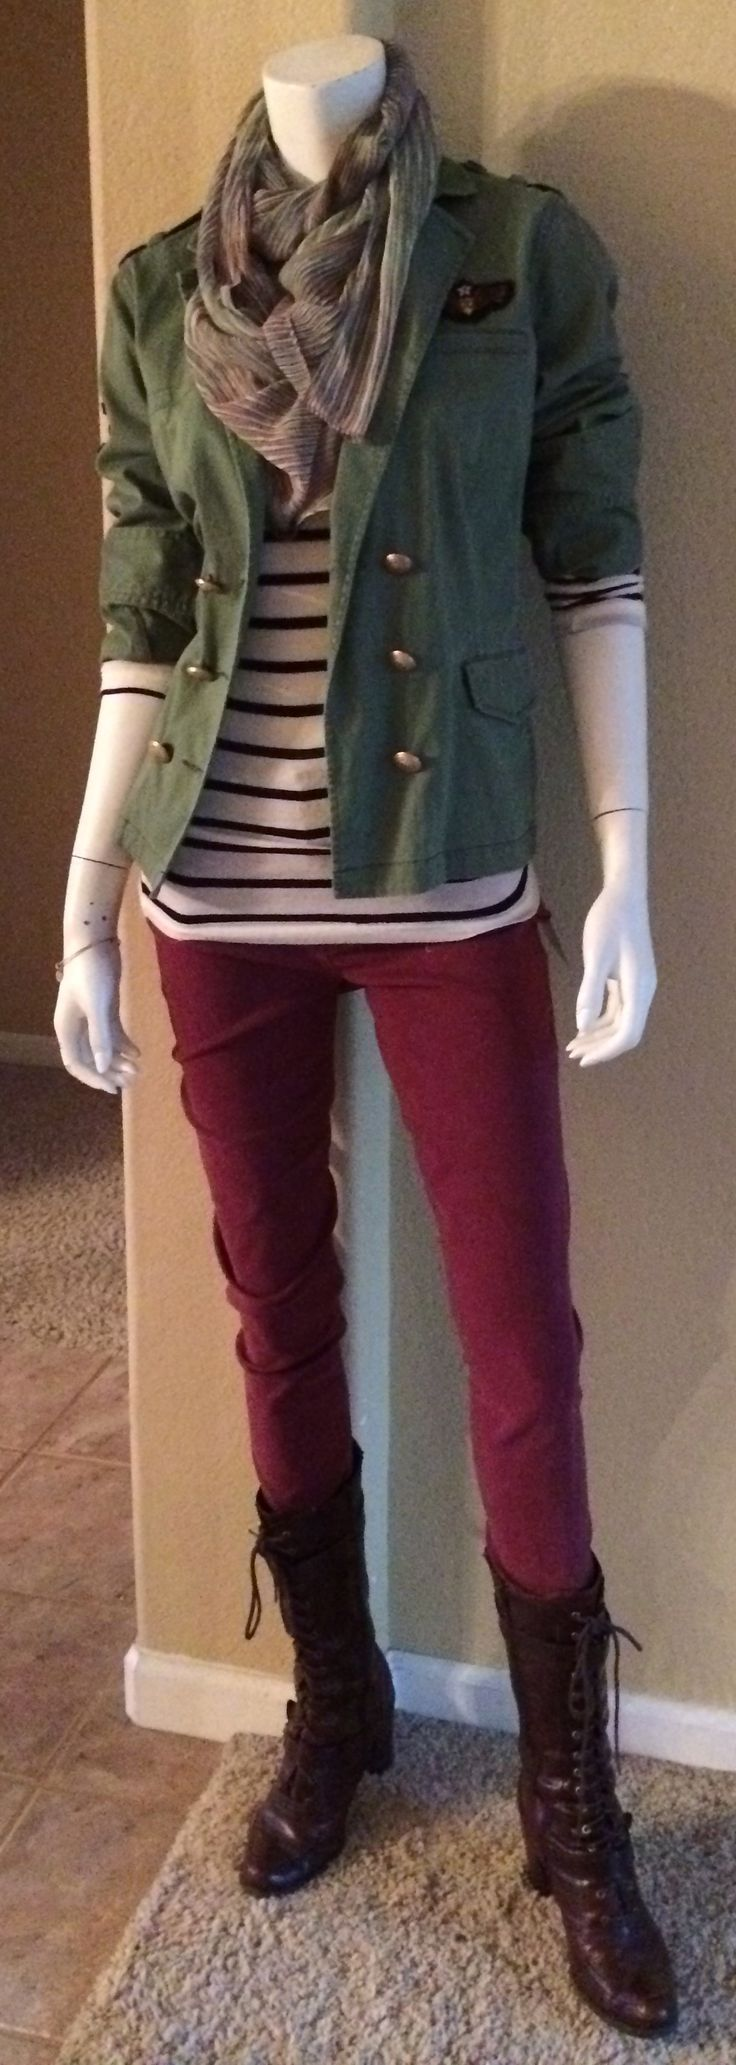 Daily Look: CAbi Fall '14 Bordeaux Wash Super Skinny Jean with vintage striped tee, Sergeant's Jacket and Marble Scarf.  #fallfashion #cabiclothing